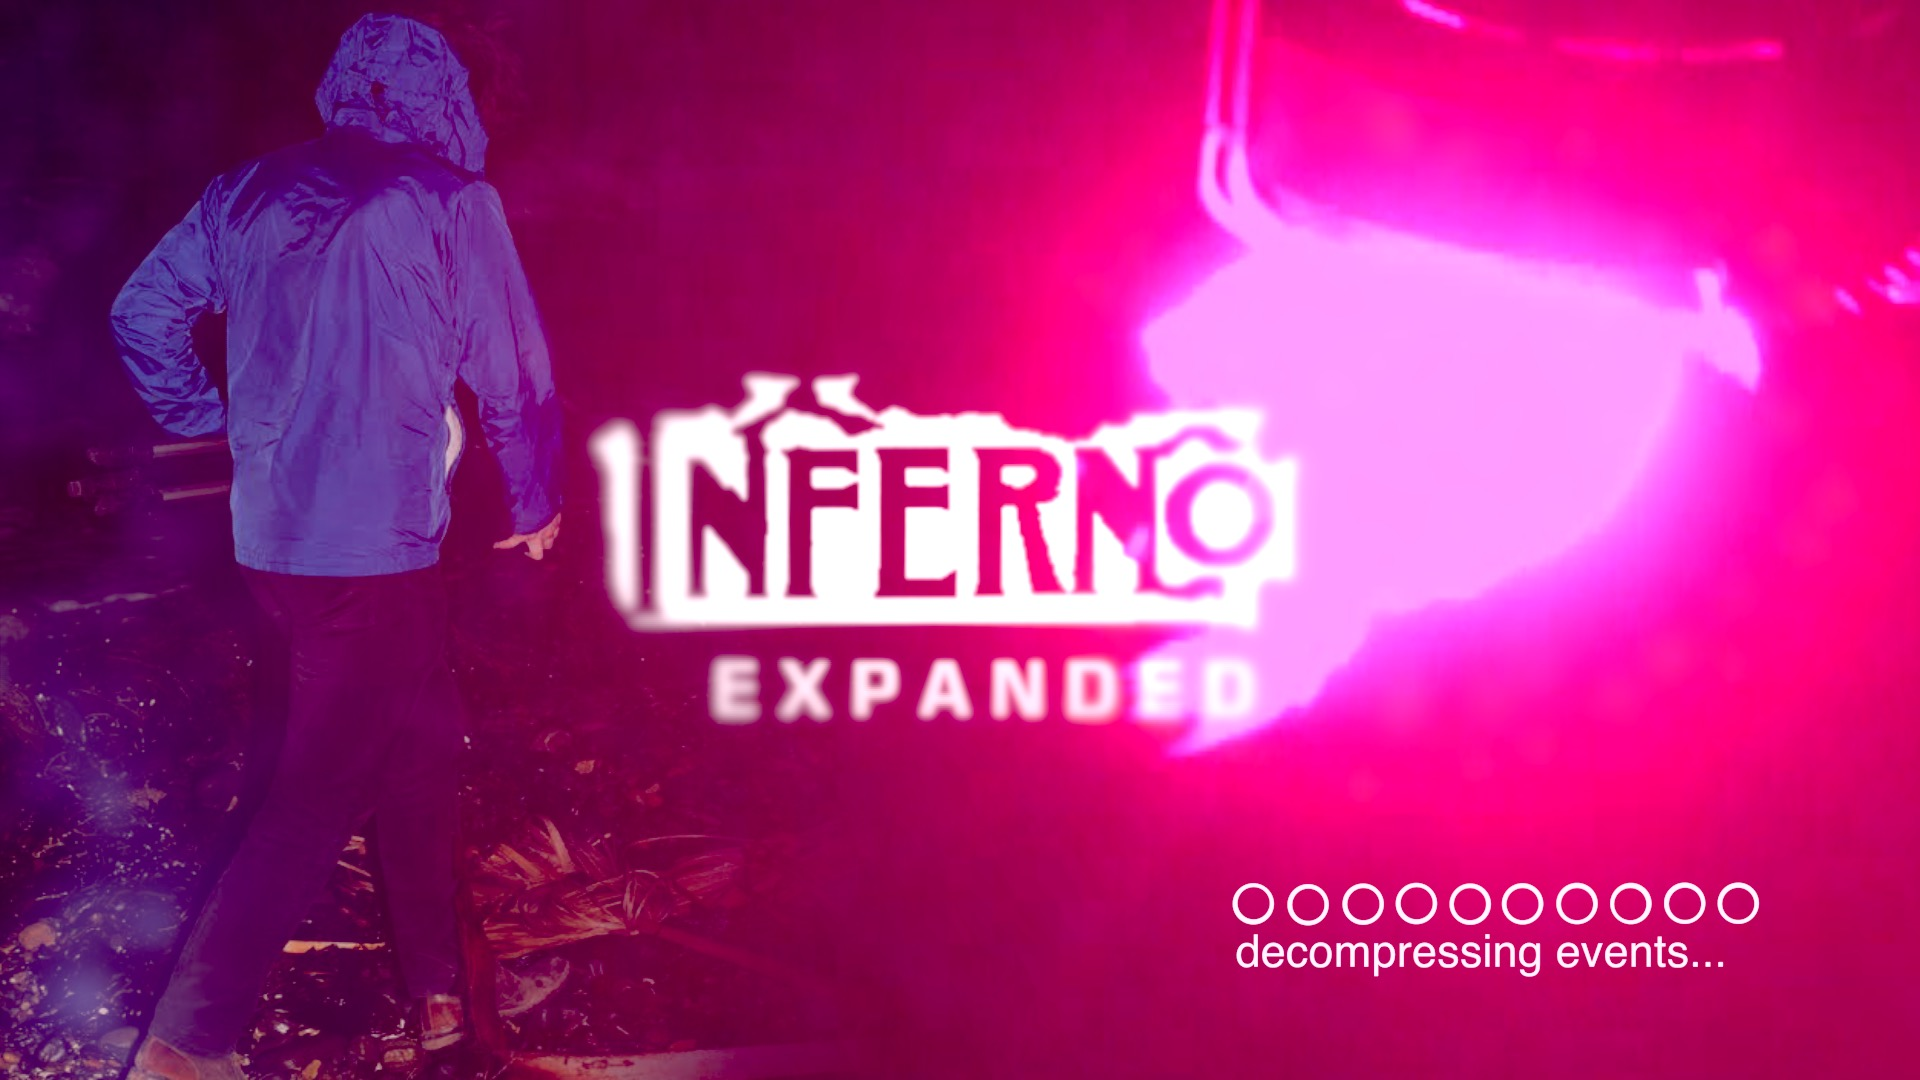 Inferno Expanded